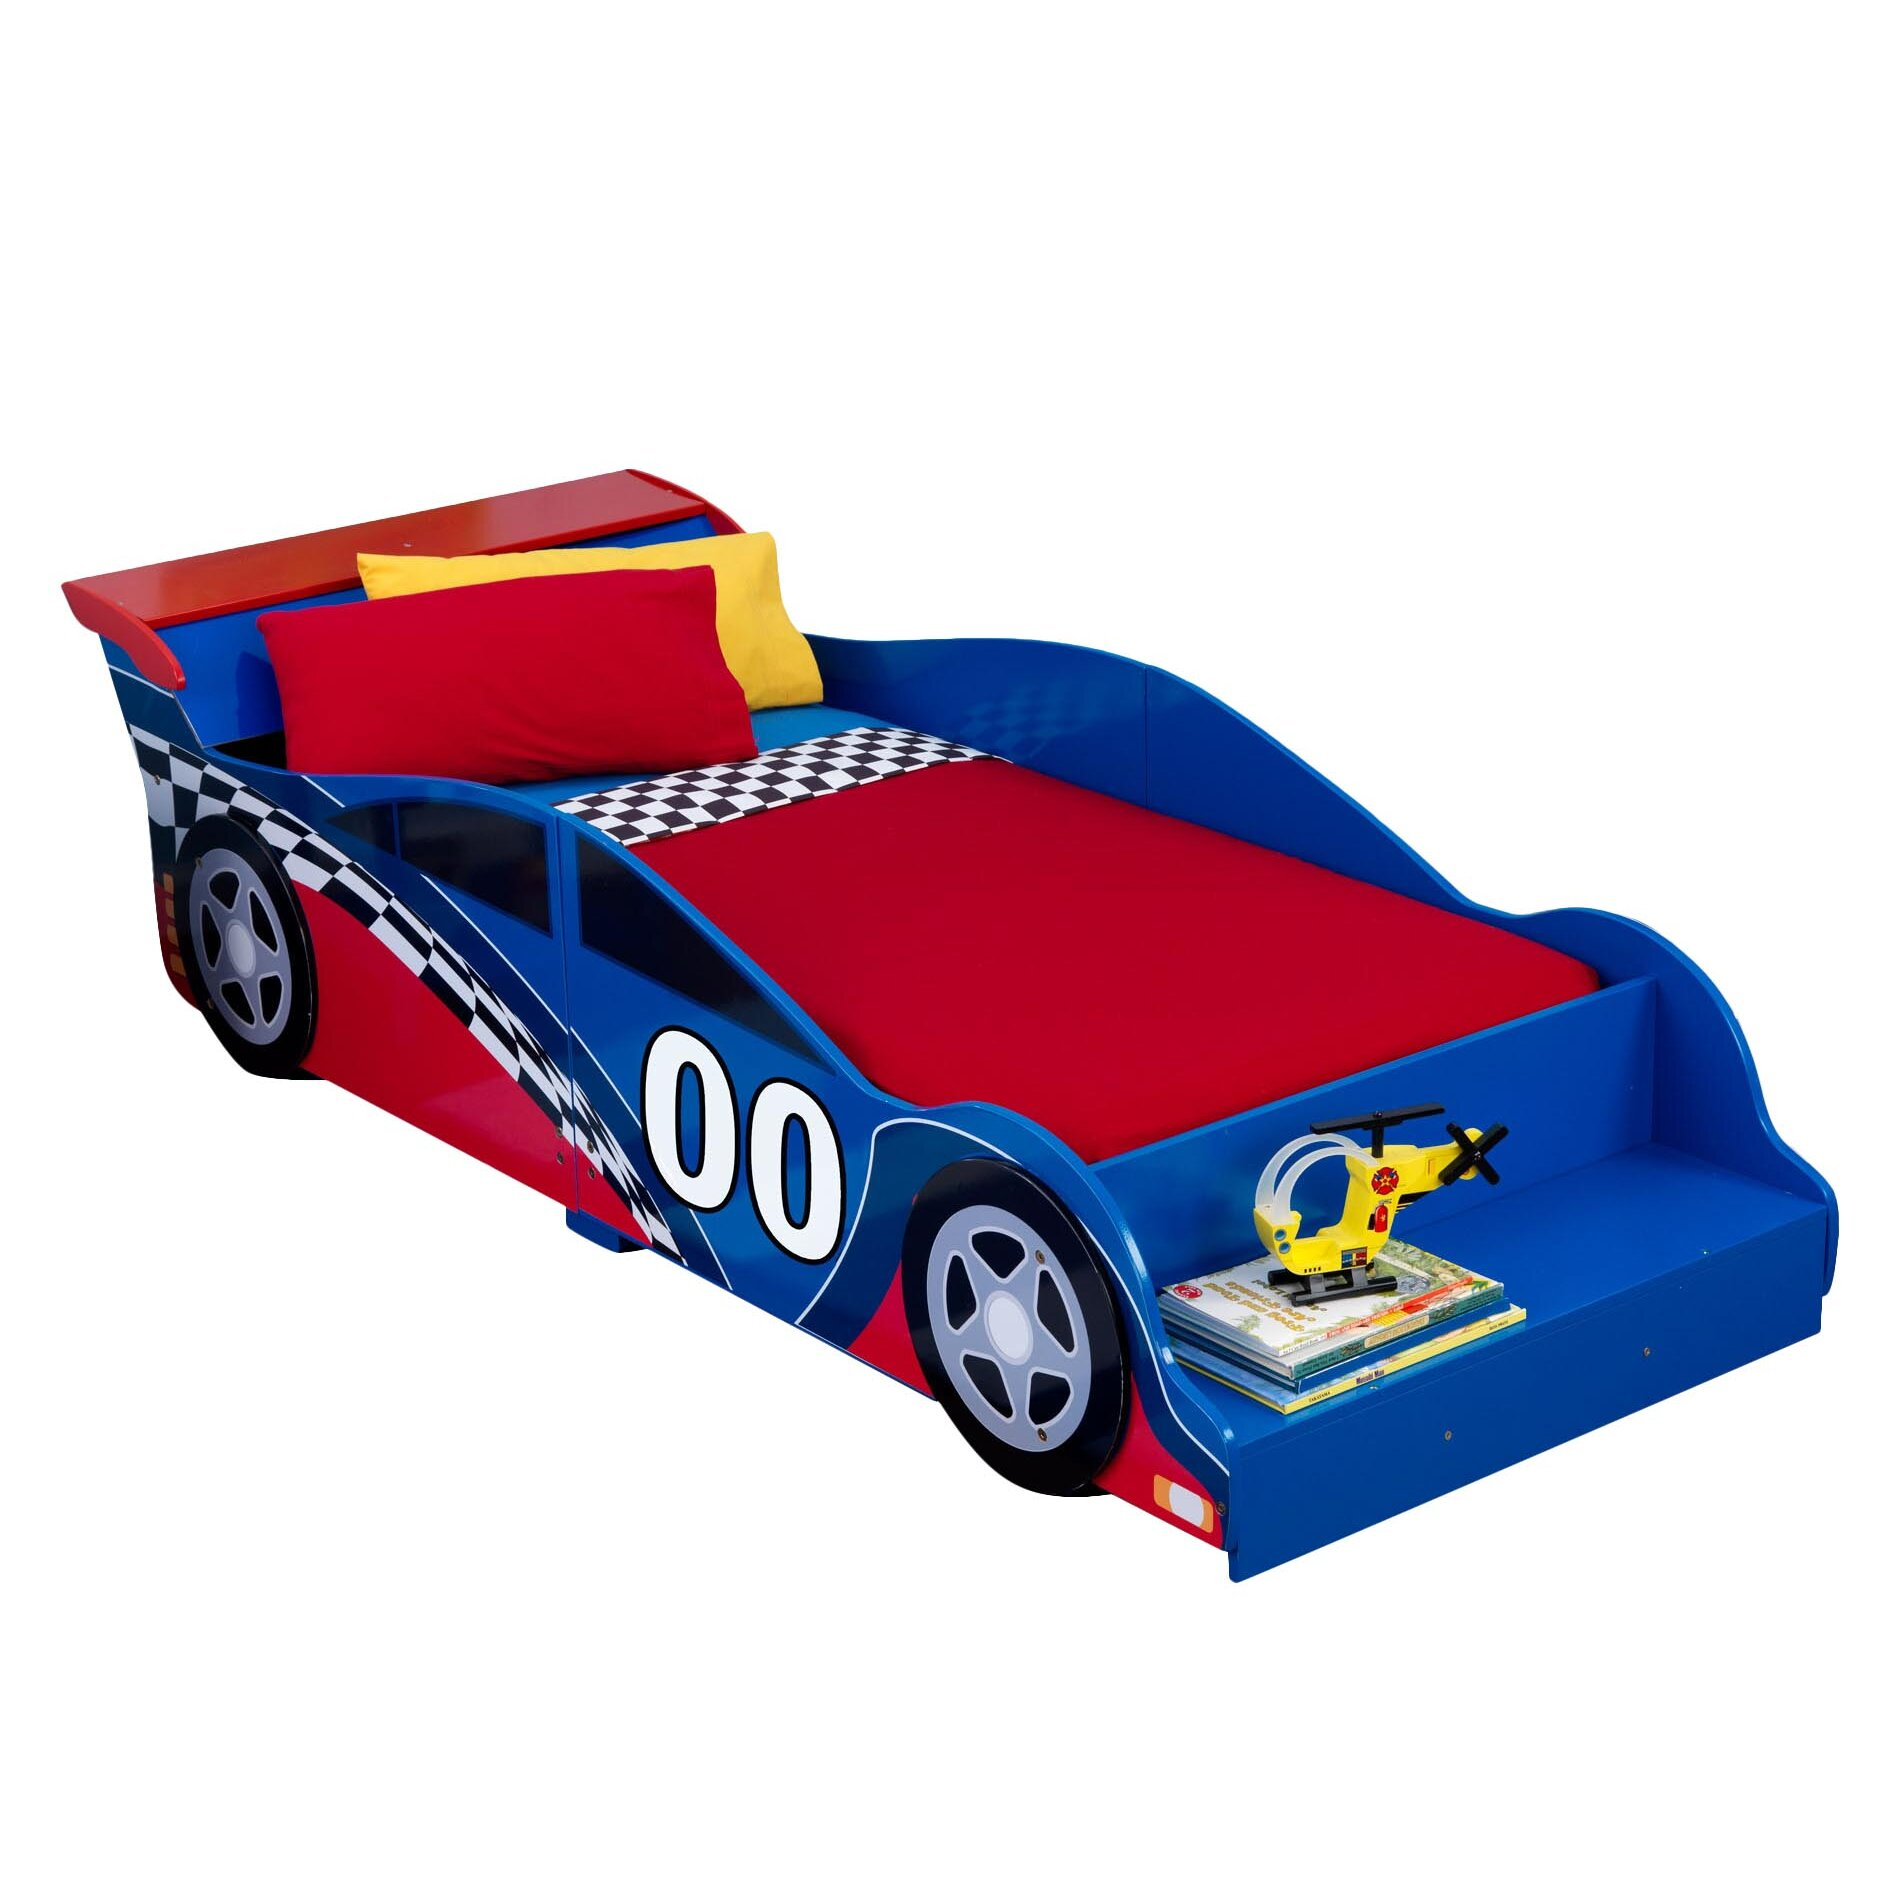 KidKraft Racecar Toddler Car Bed Amp Reviews